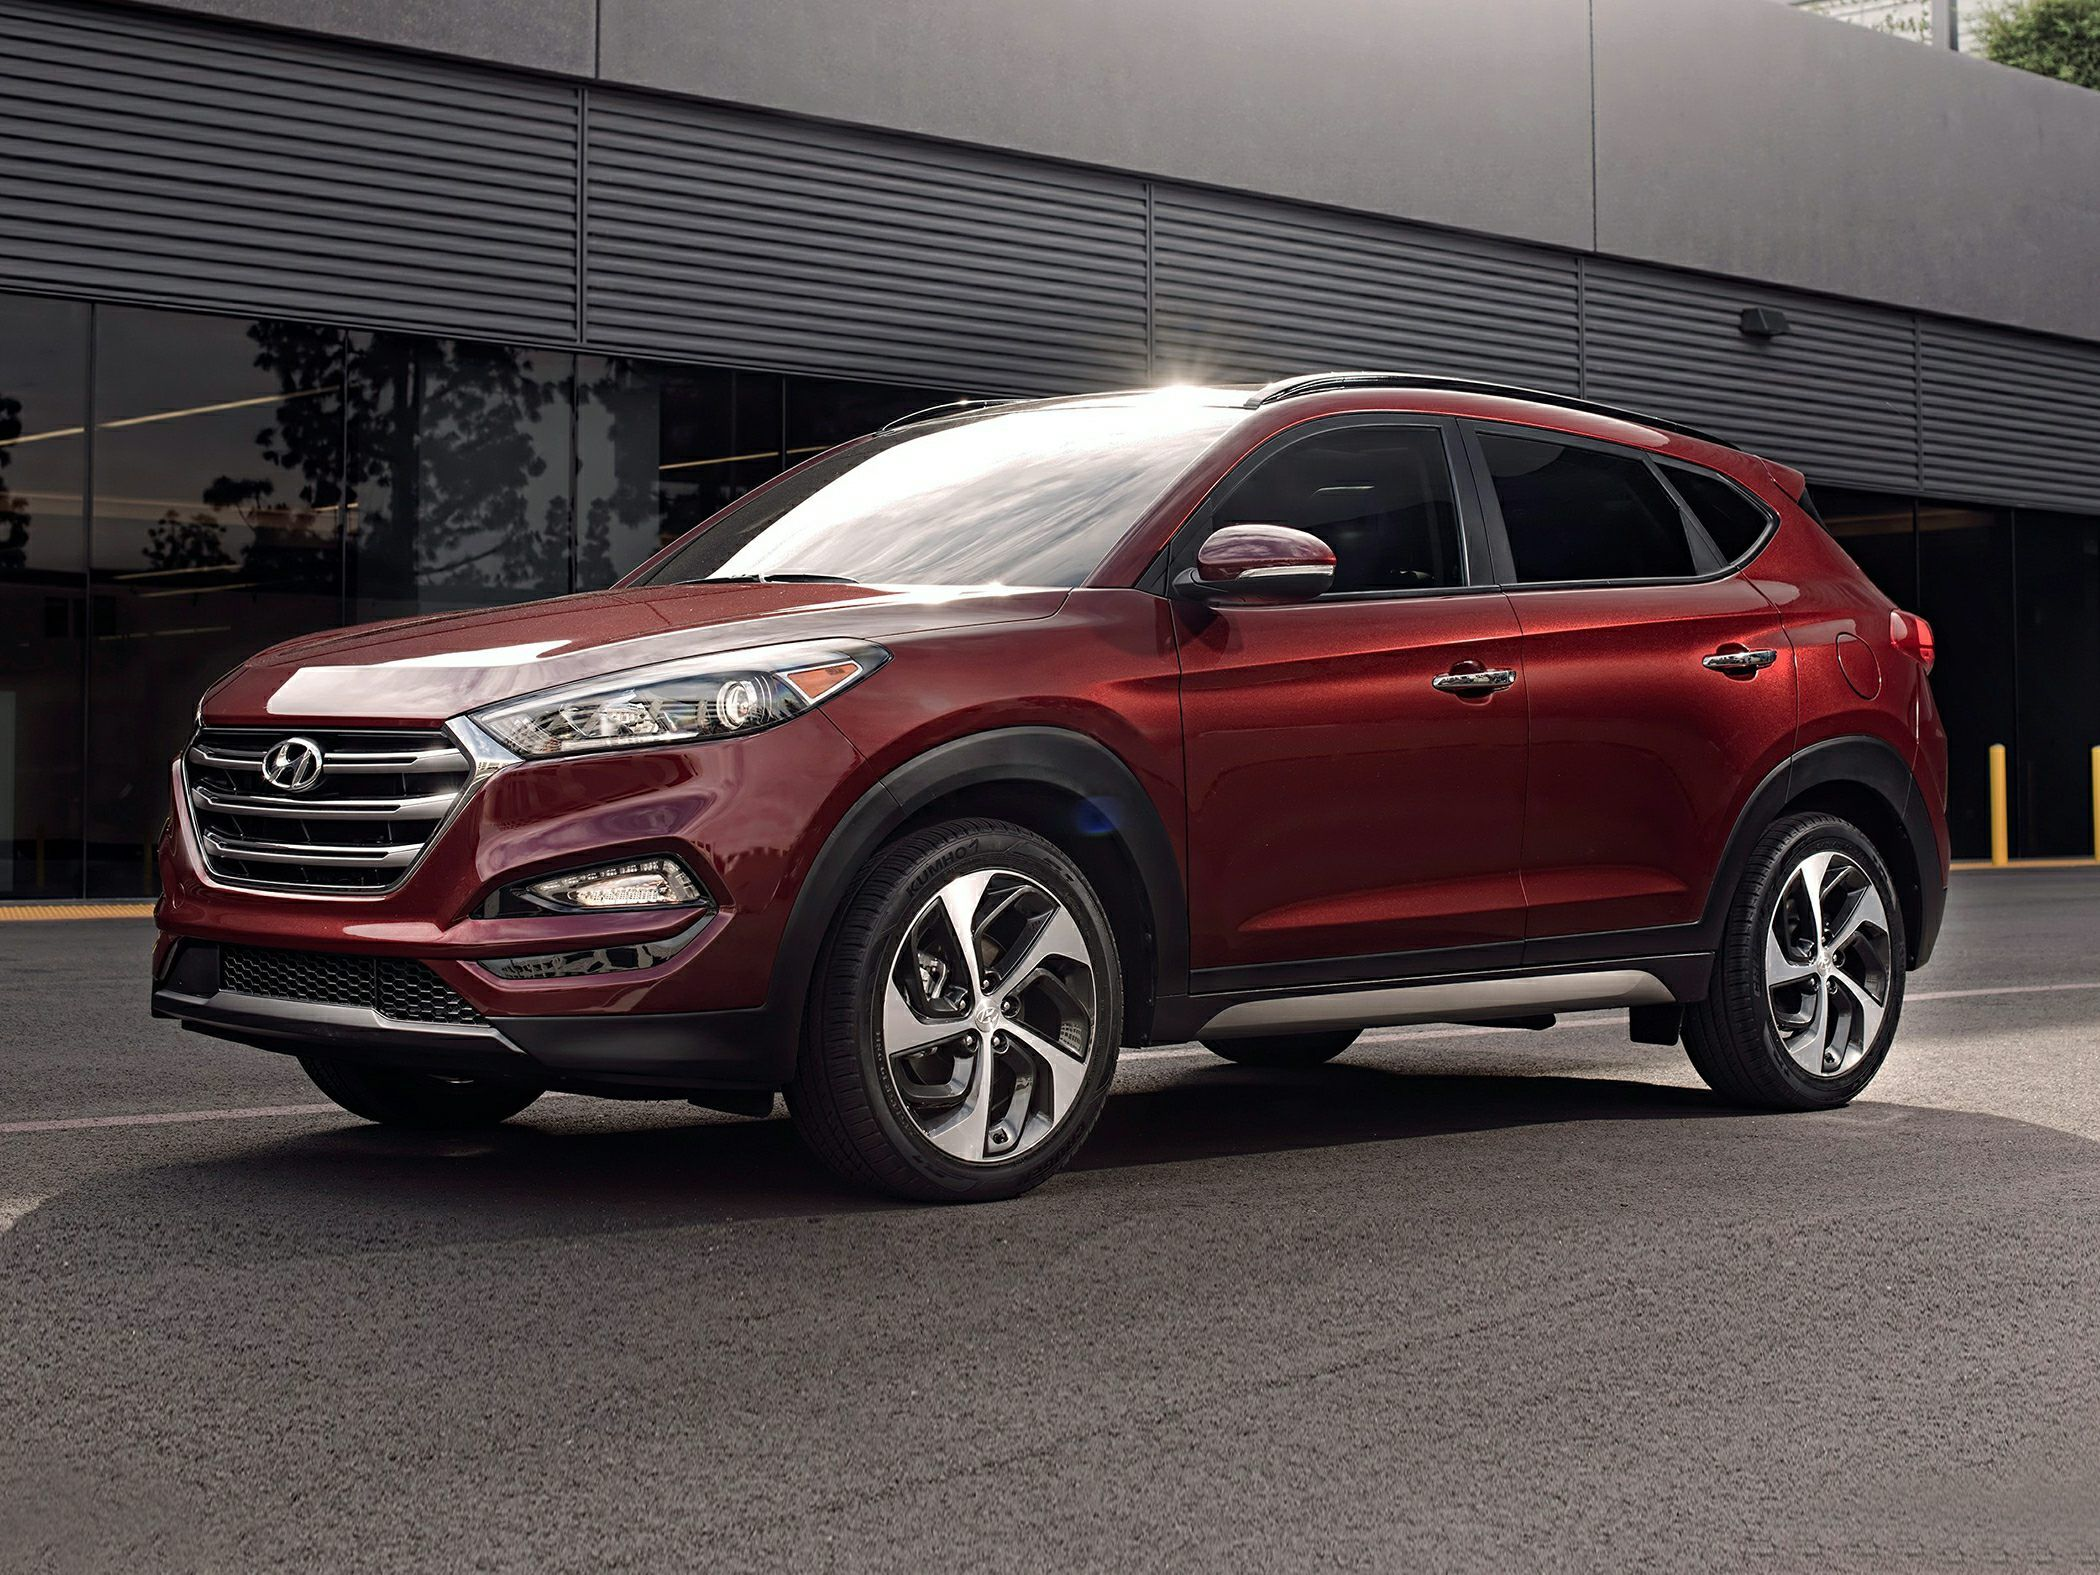 2017 Hyundai Tucson Lease >> 2017 Hyundai Tucson Deals Prices Incentives Leases Overview